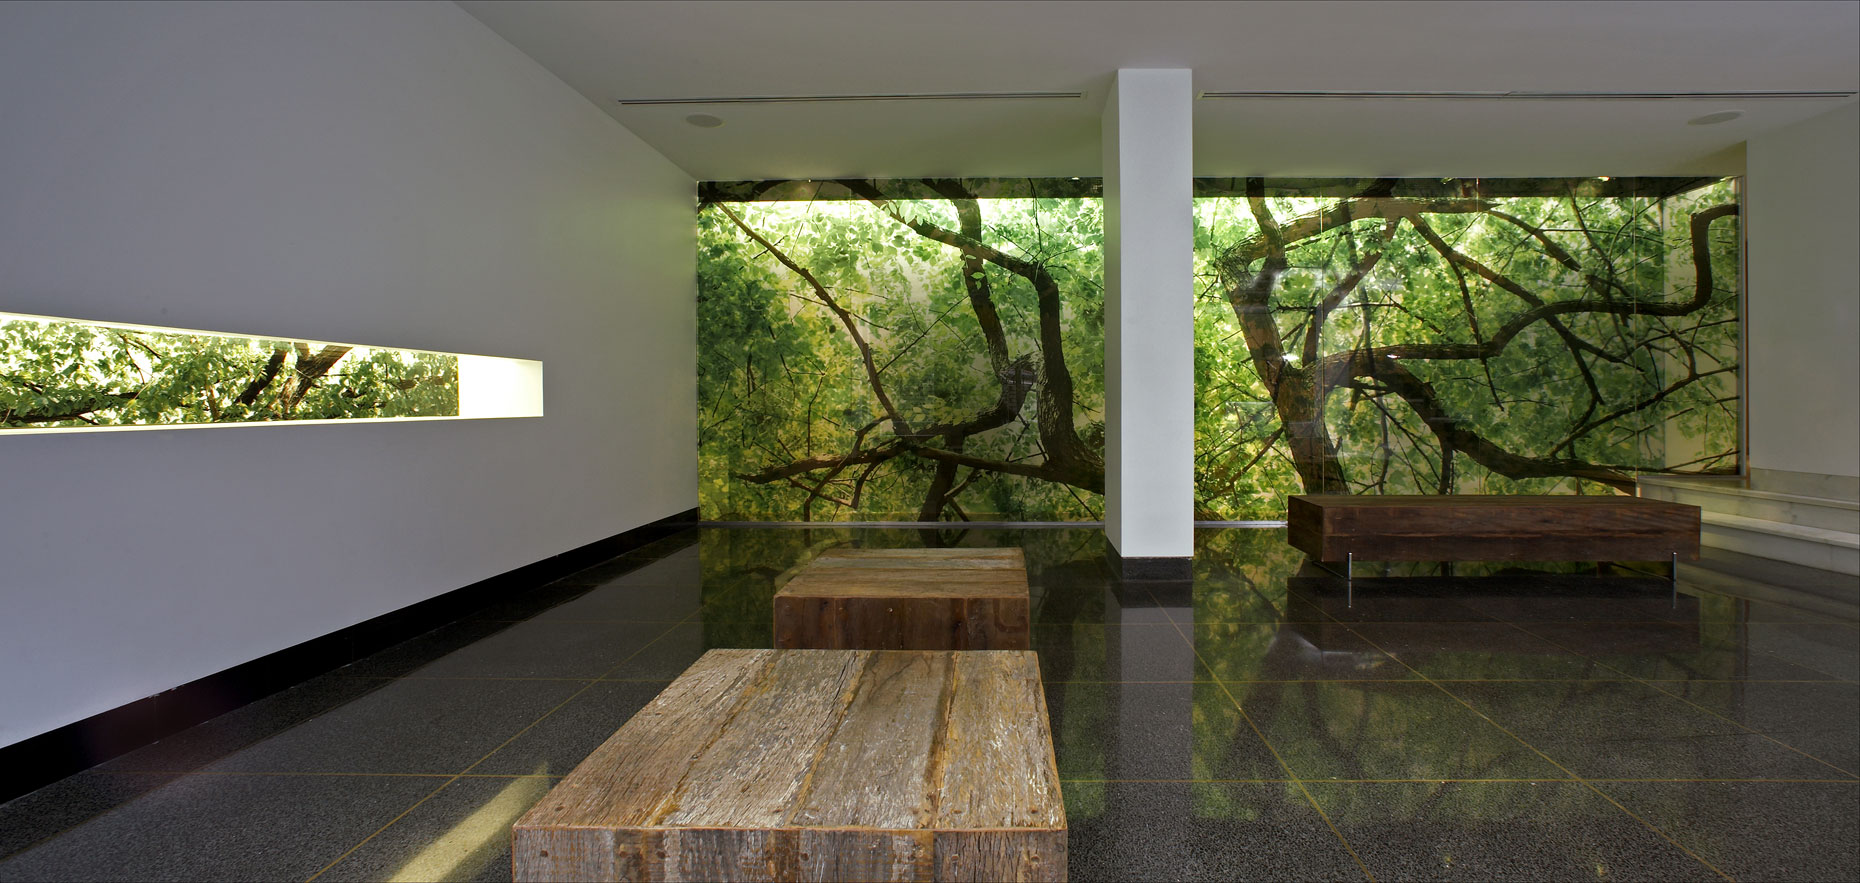 Architect parc 15 lobby nyc usa 1 for Residential interior design